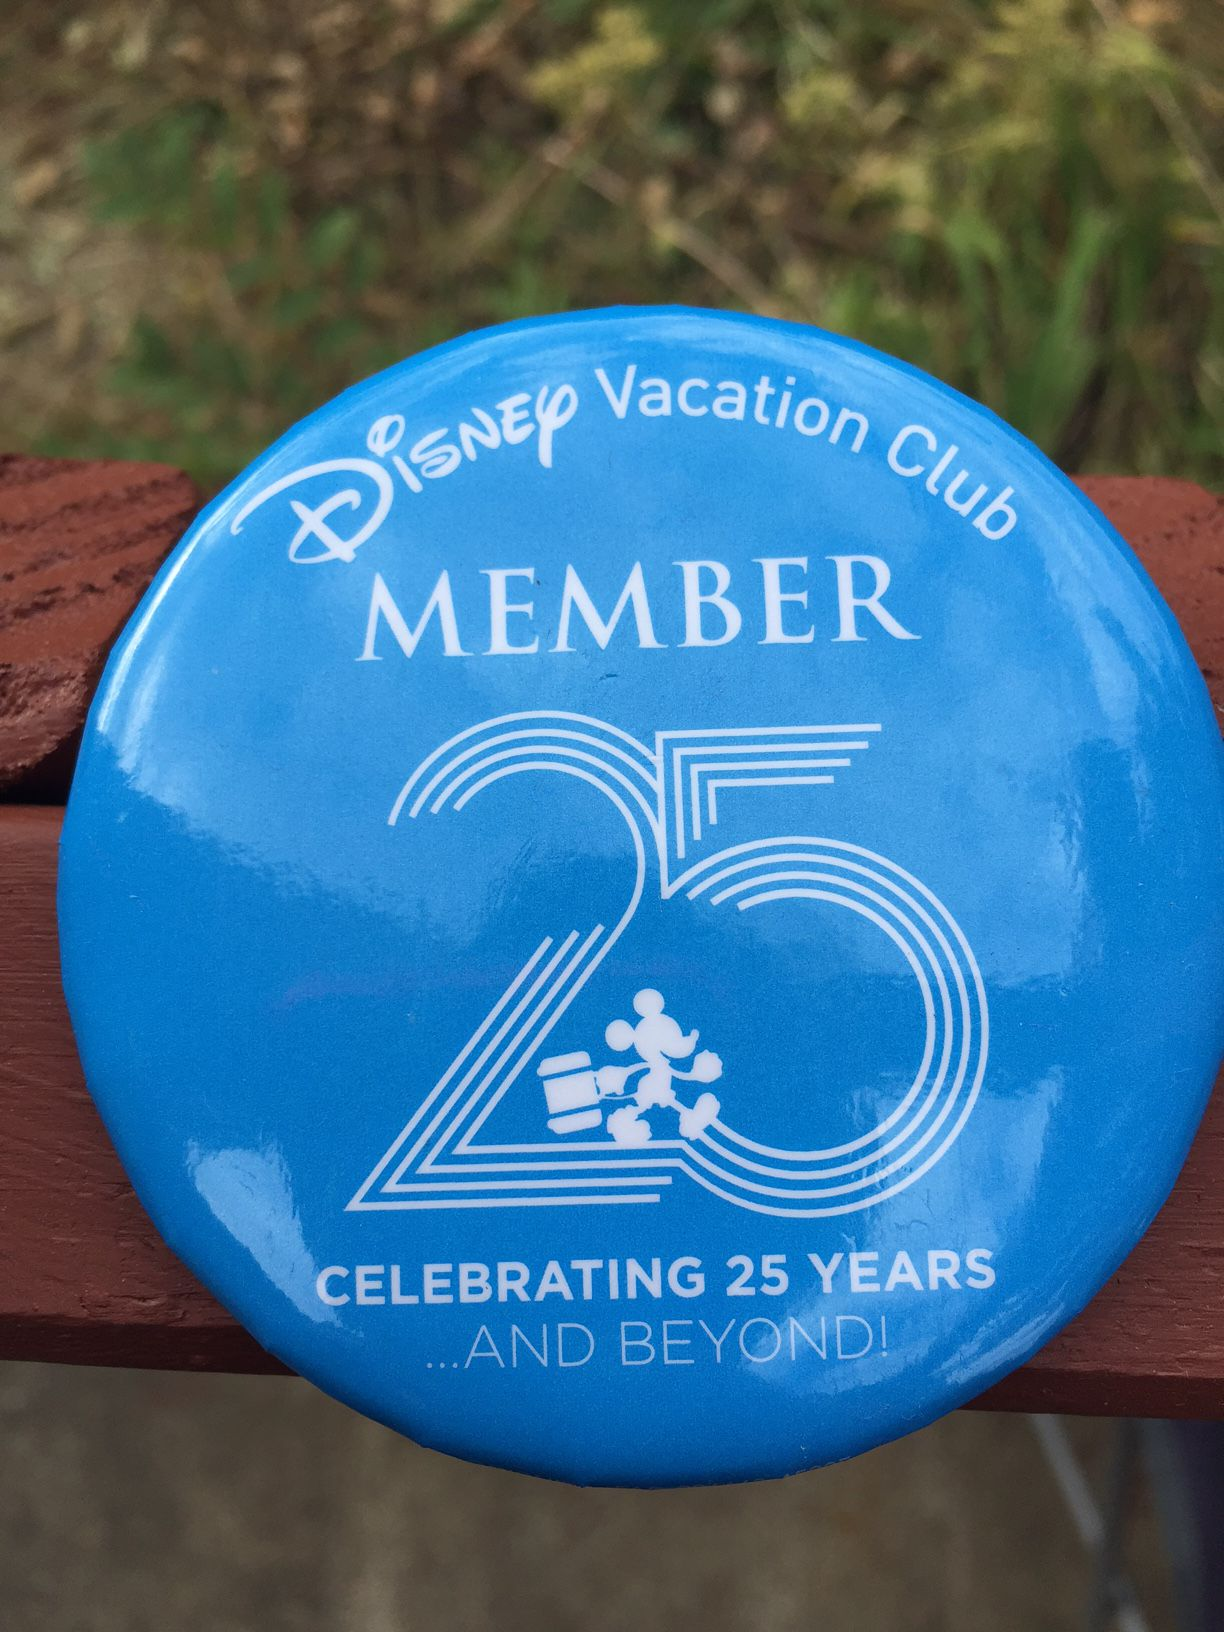 A review of the Disney Vacation Club 25th Anniversary Celrbation Safari Spectacular | PassPorter.com